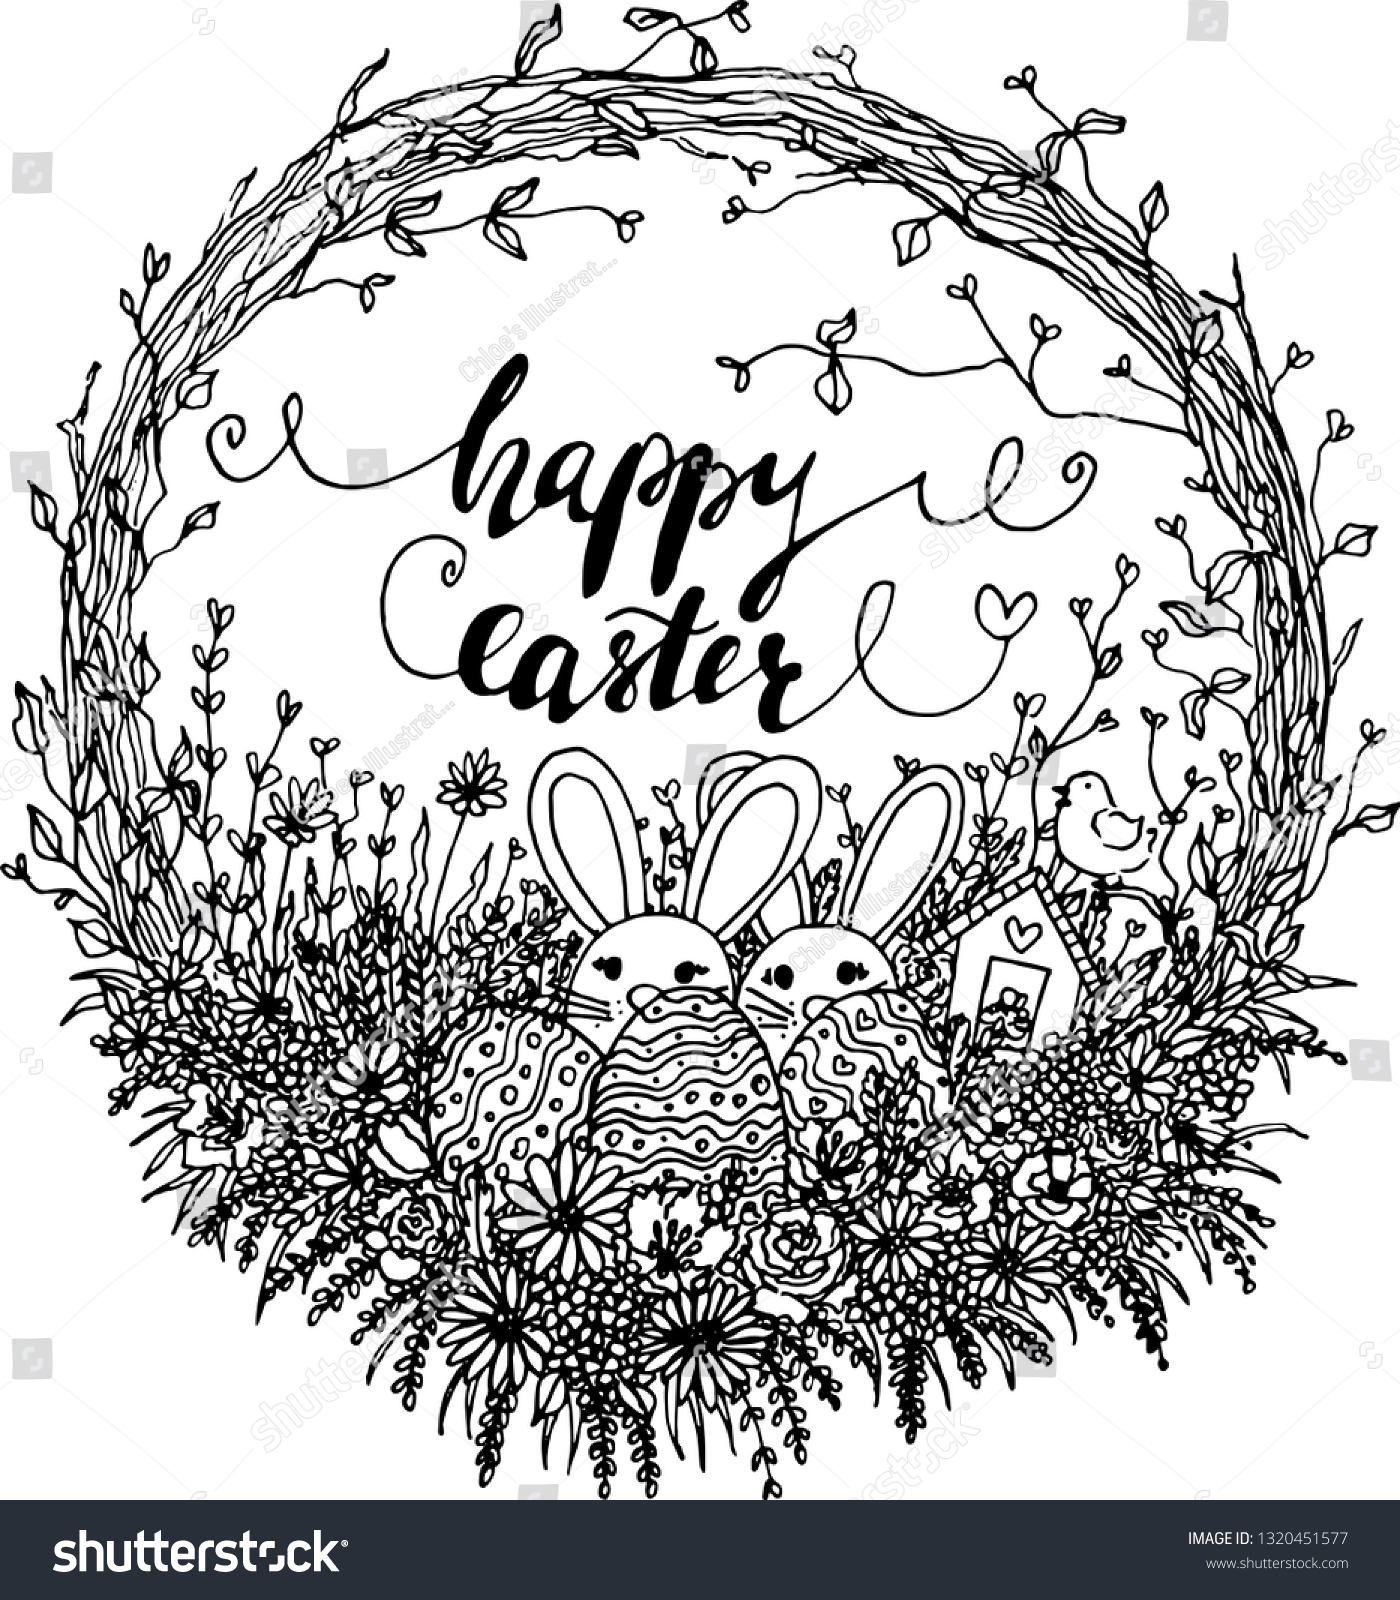 stock-vector-vector-hello-easter-wreath-